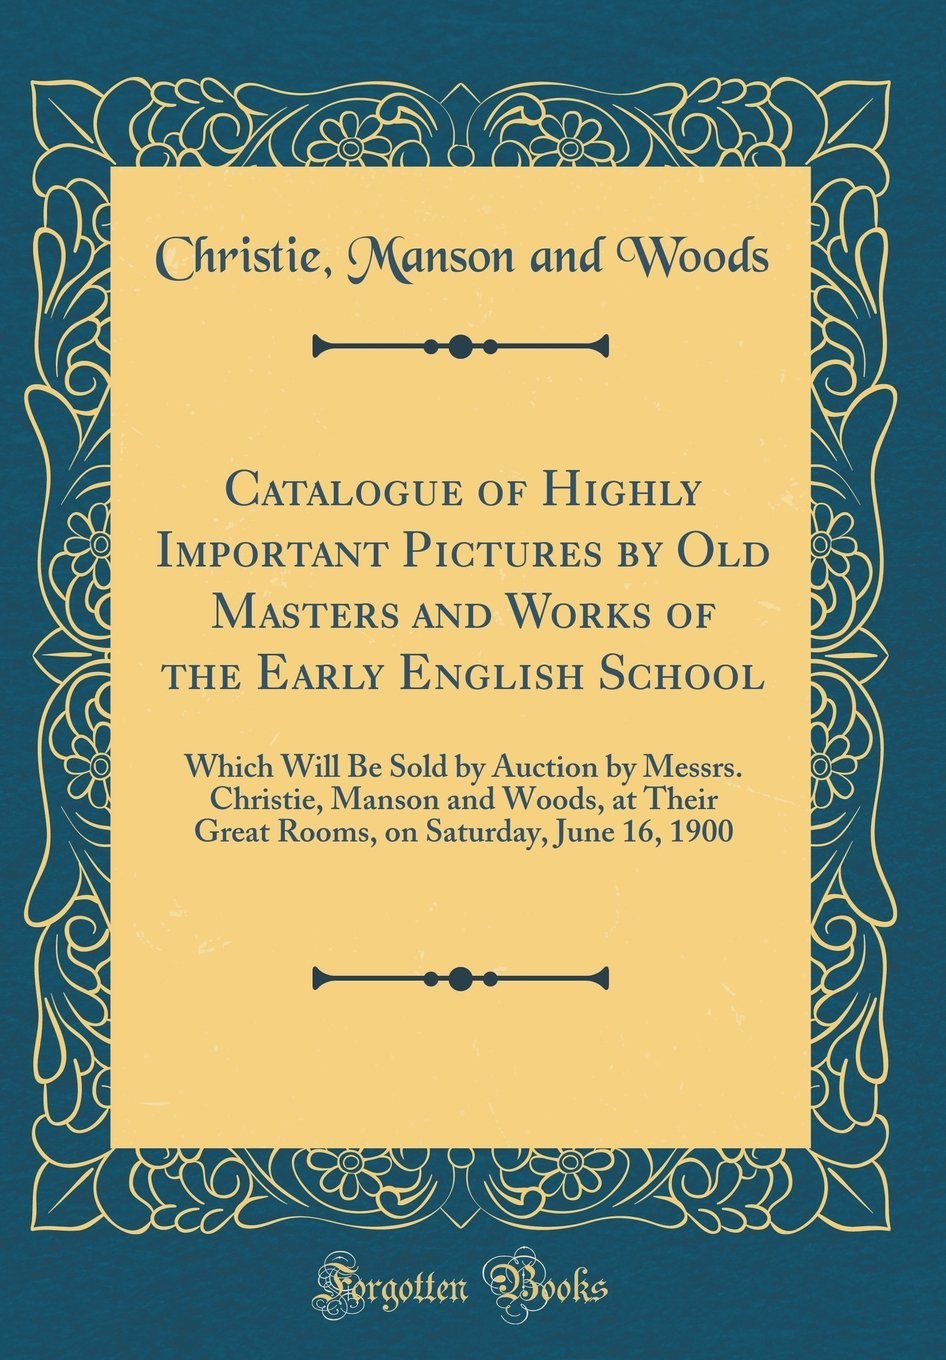 Catalogue of Highly Important Pictures by Old Masters and Works of the Early English School: Which Will Be Sold by Auction by Messrs. Christie, Manson ... on Saturday, June 16, 1900 (Classic Reprint) pdf